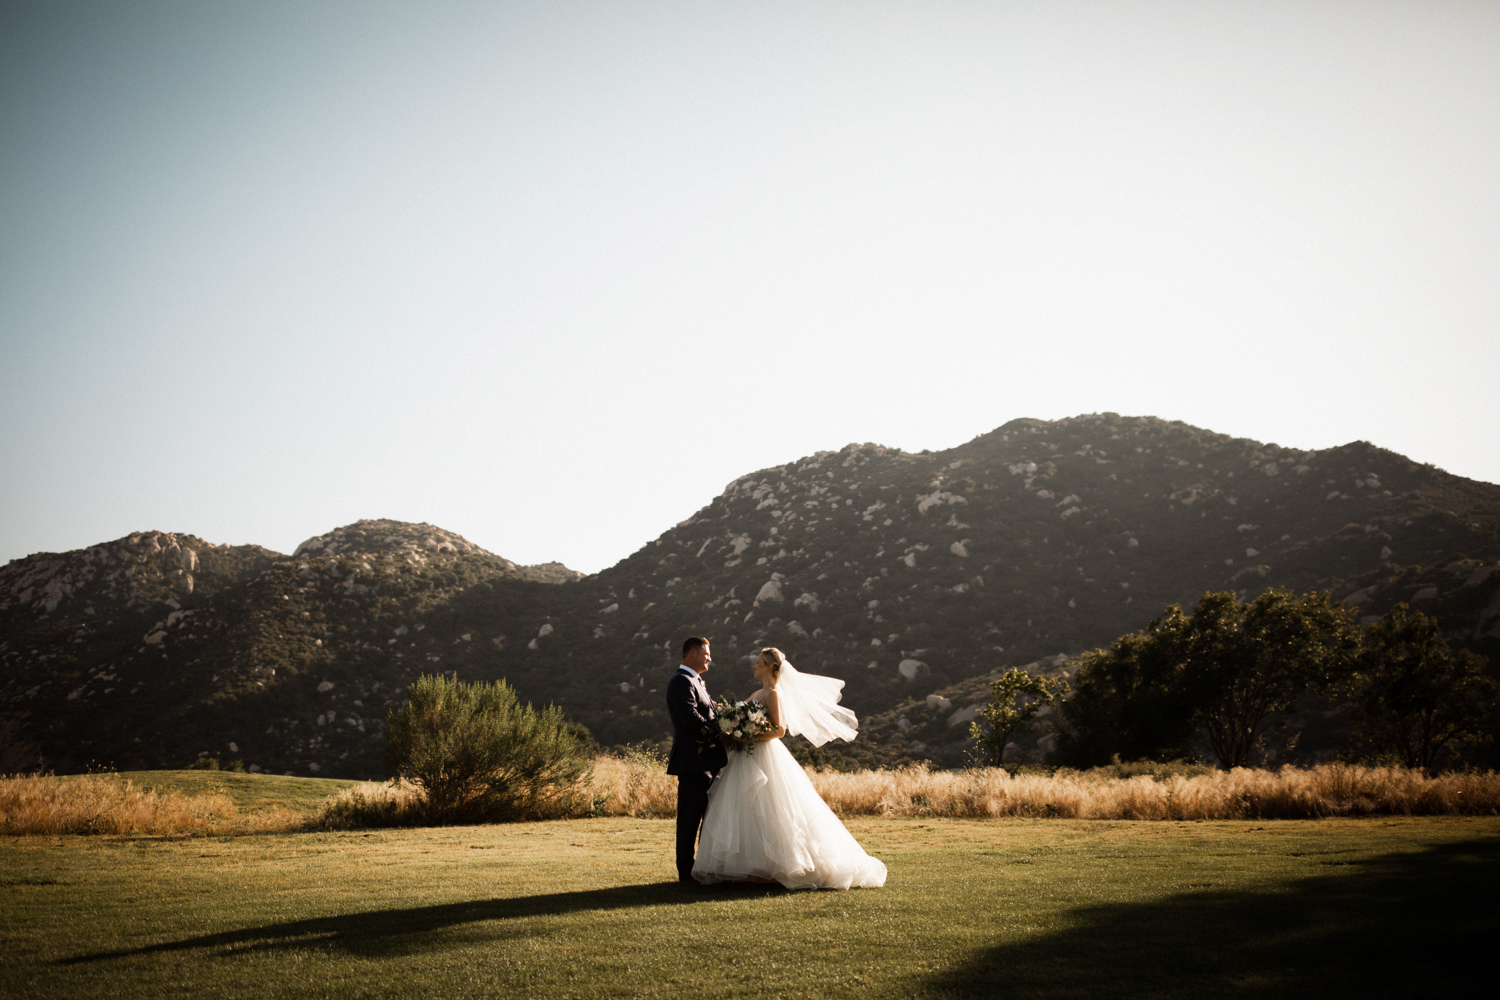 Wedding Temecula Creek Inn Orange County San Diego Los Angeles Photographer Elopement Marriage Photography Engagement Destination  - 72.jpg